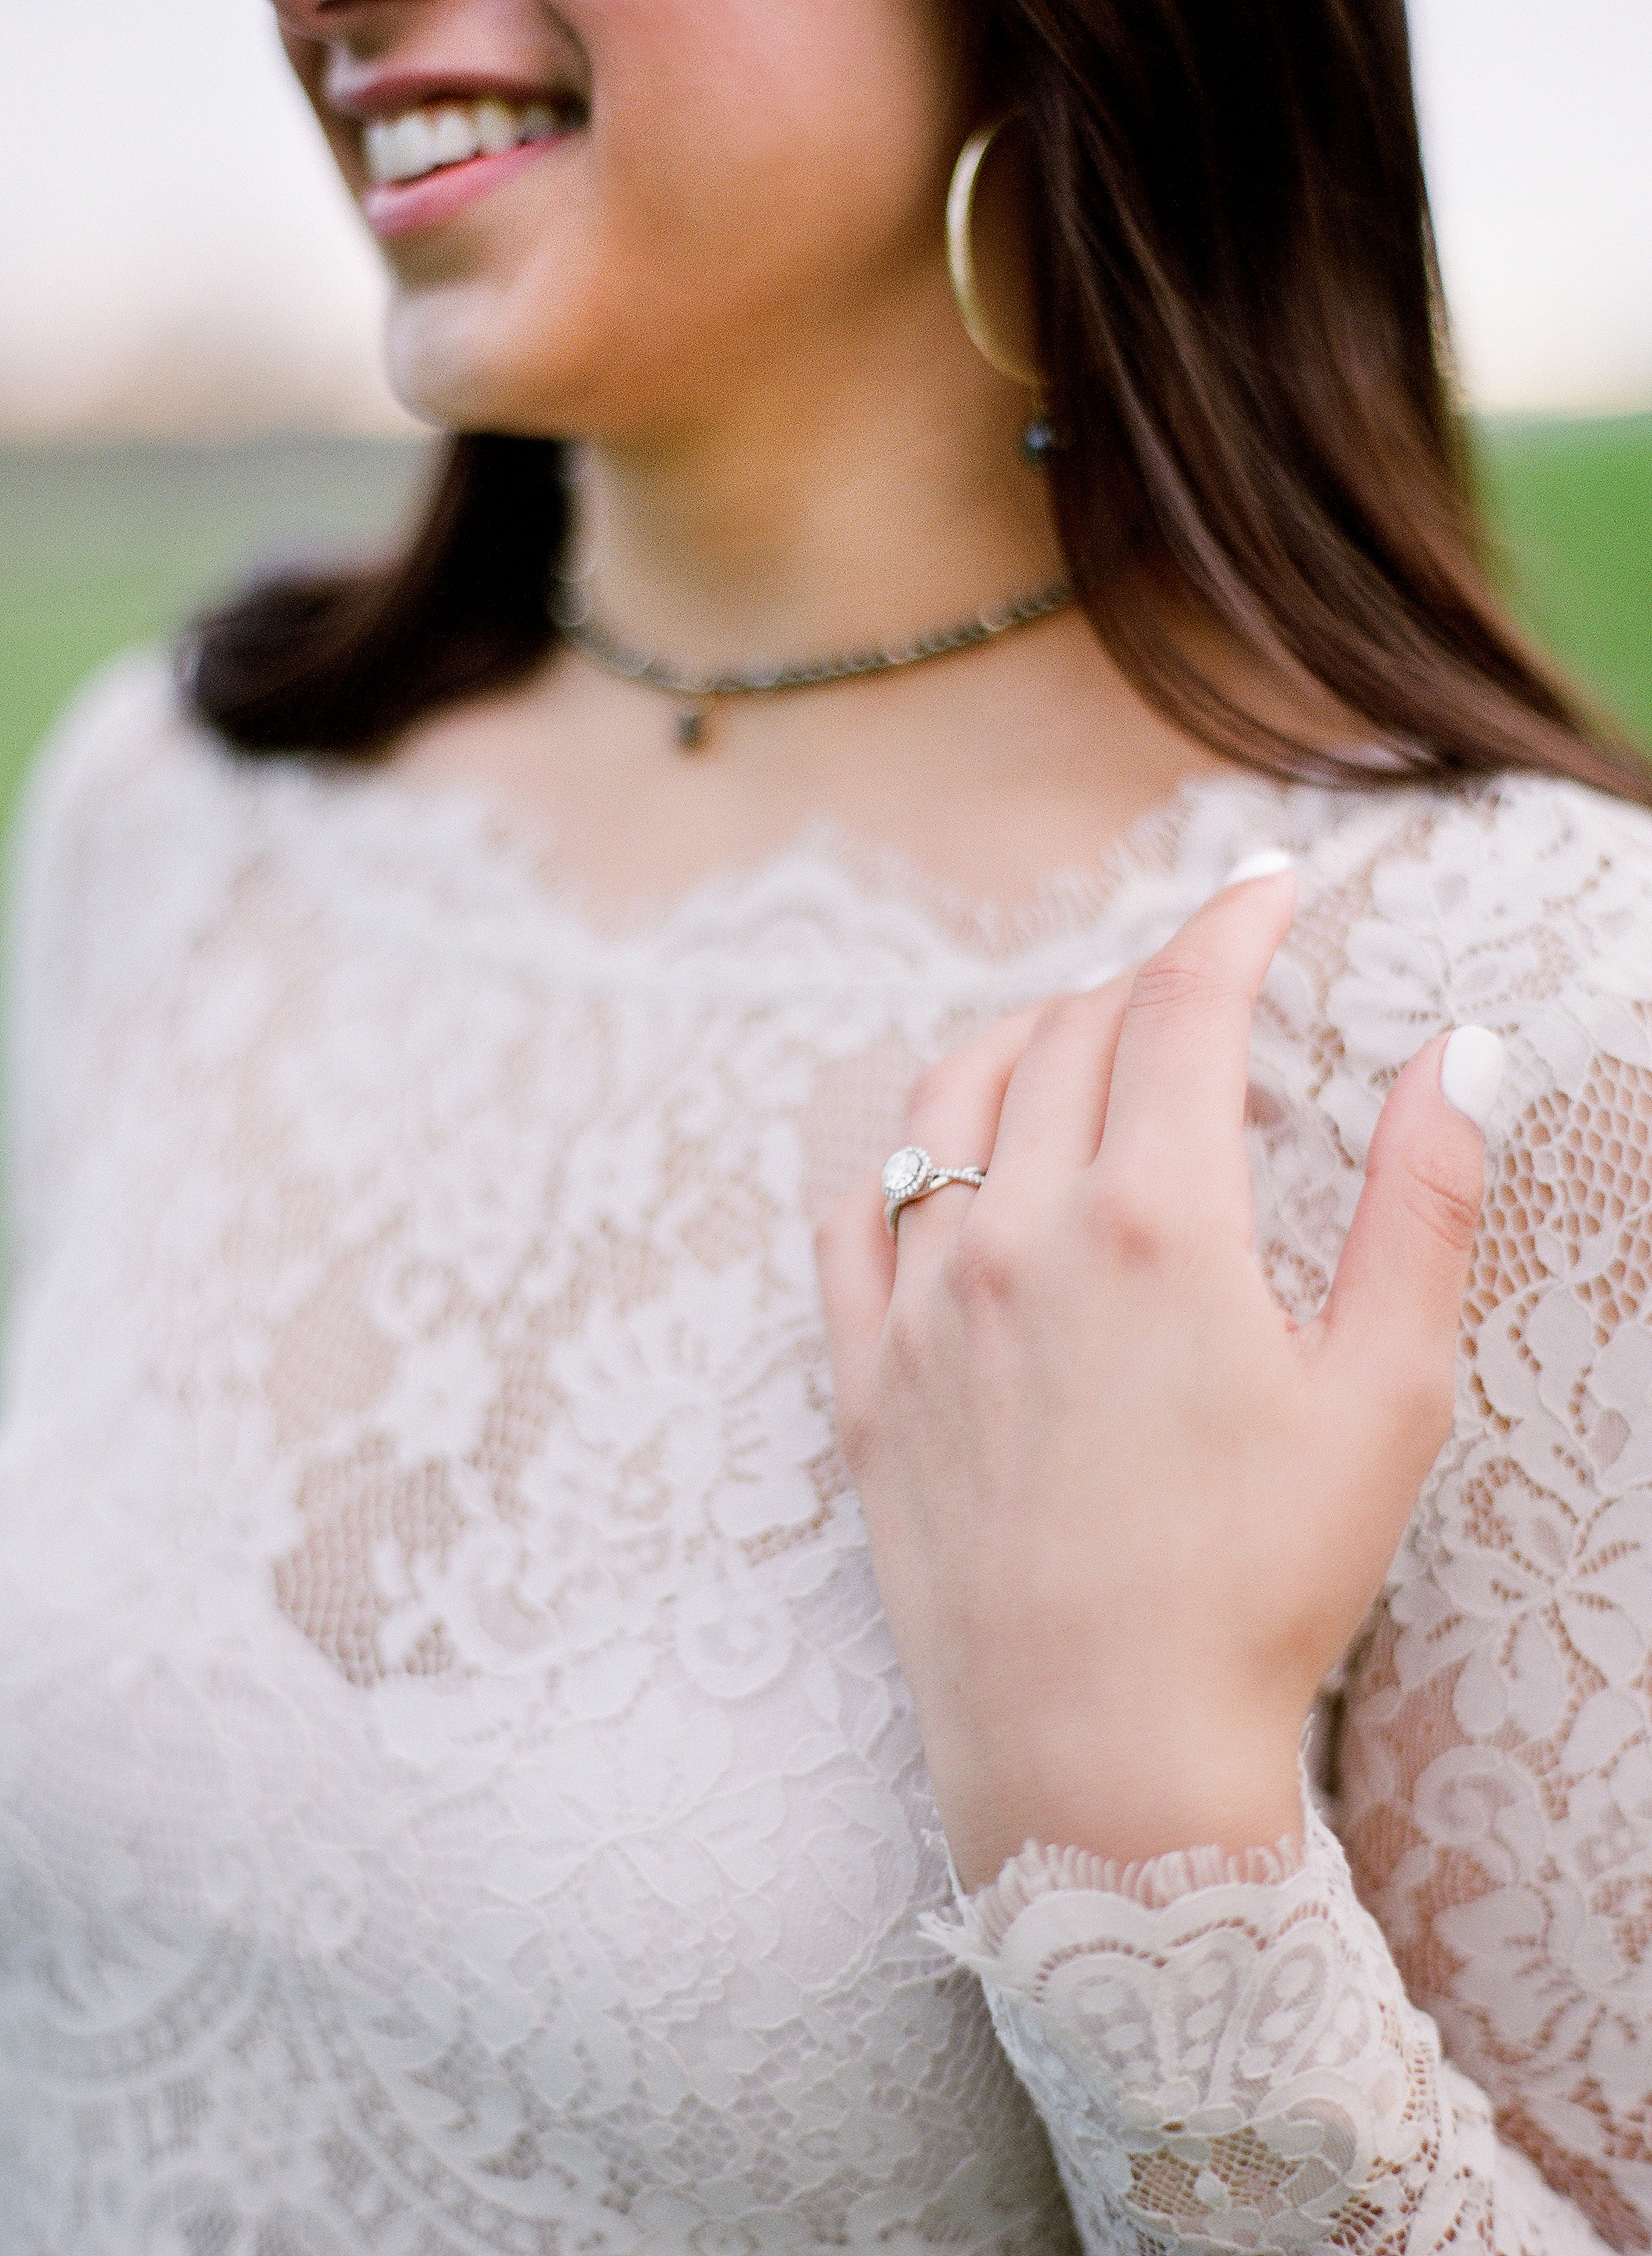 simrin-jimmy-8 She Said Yes: Simrin Patheja Uncategorized    invision_events, birmingham_al, auburn_al, alabama, atlanta_ga, atl, georgia, wedding_planner, wedding_designer, weddings, photography, wedding_planning